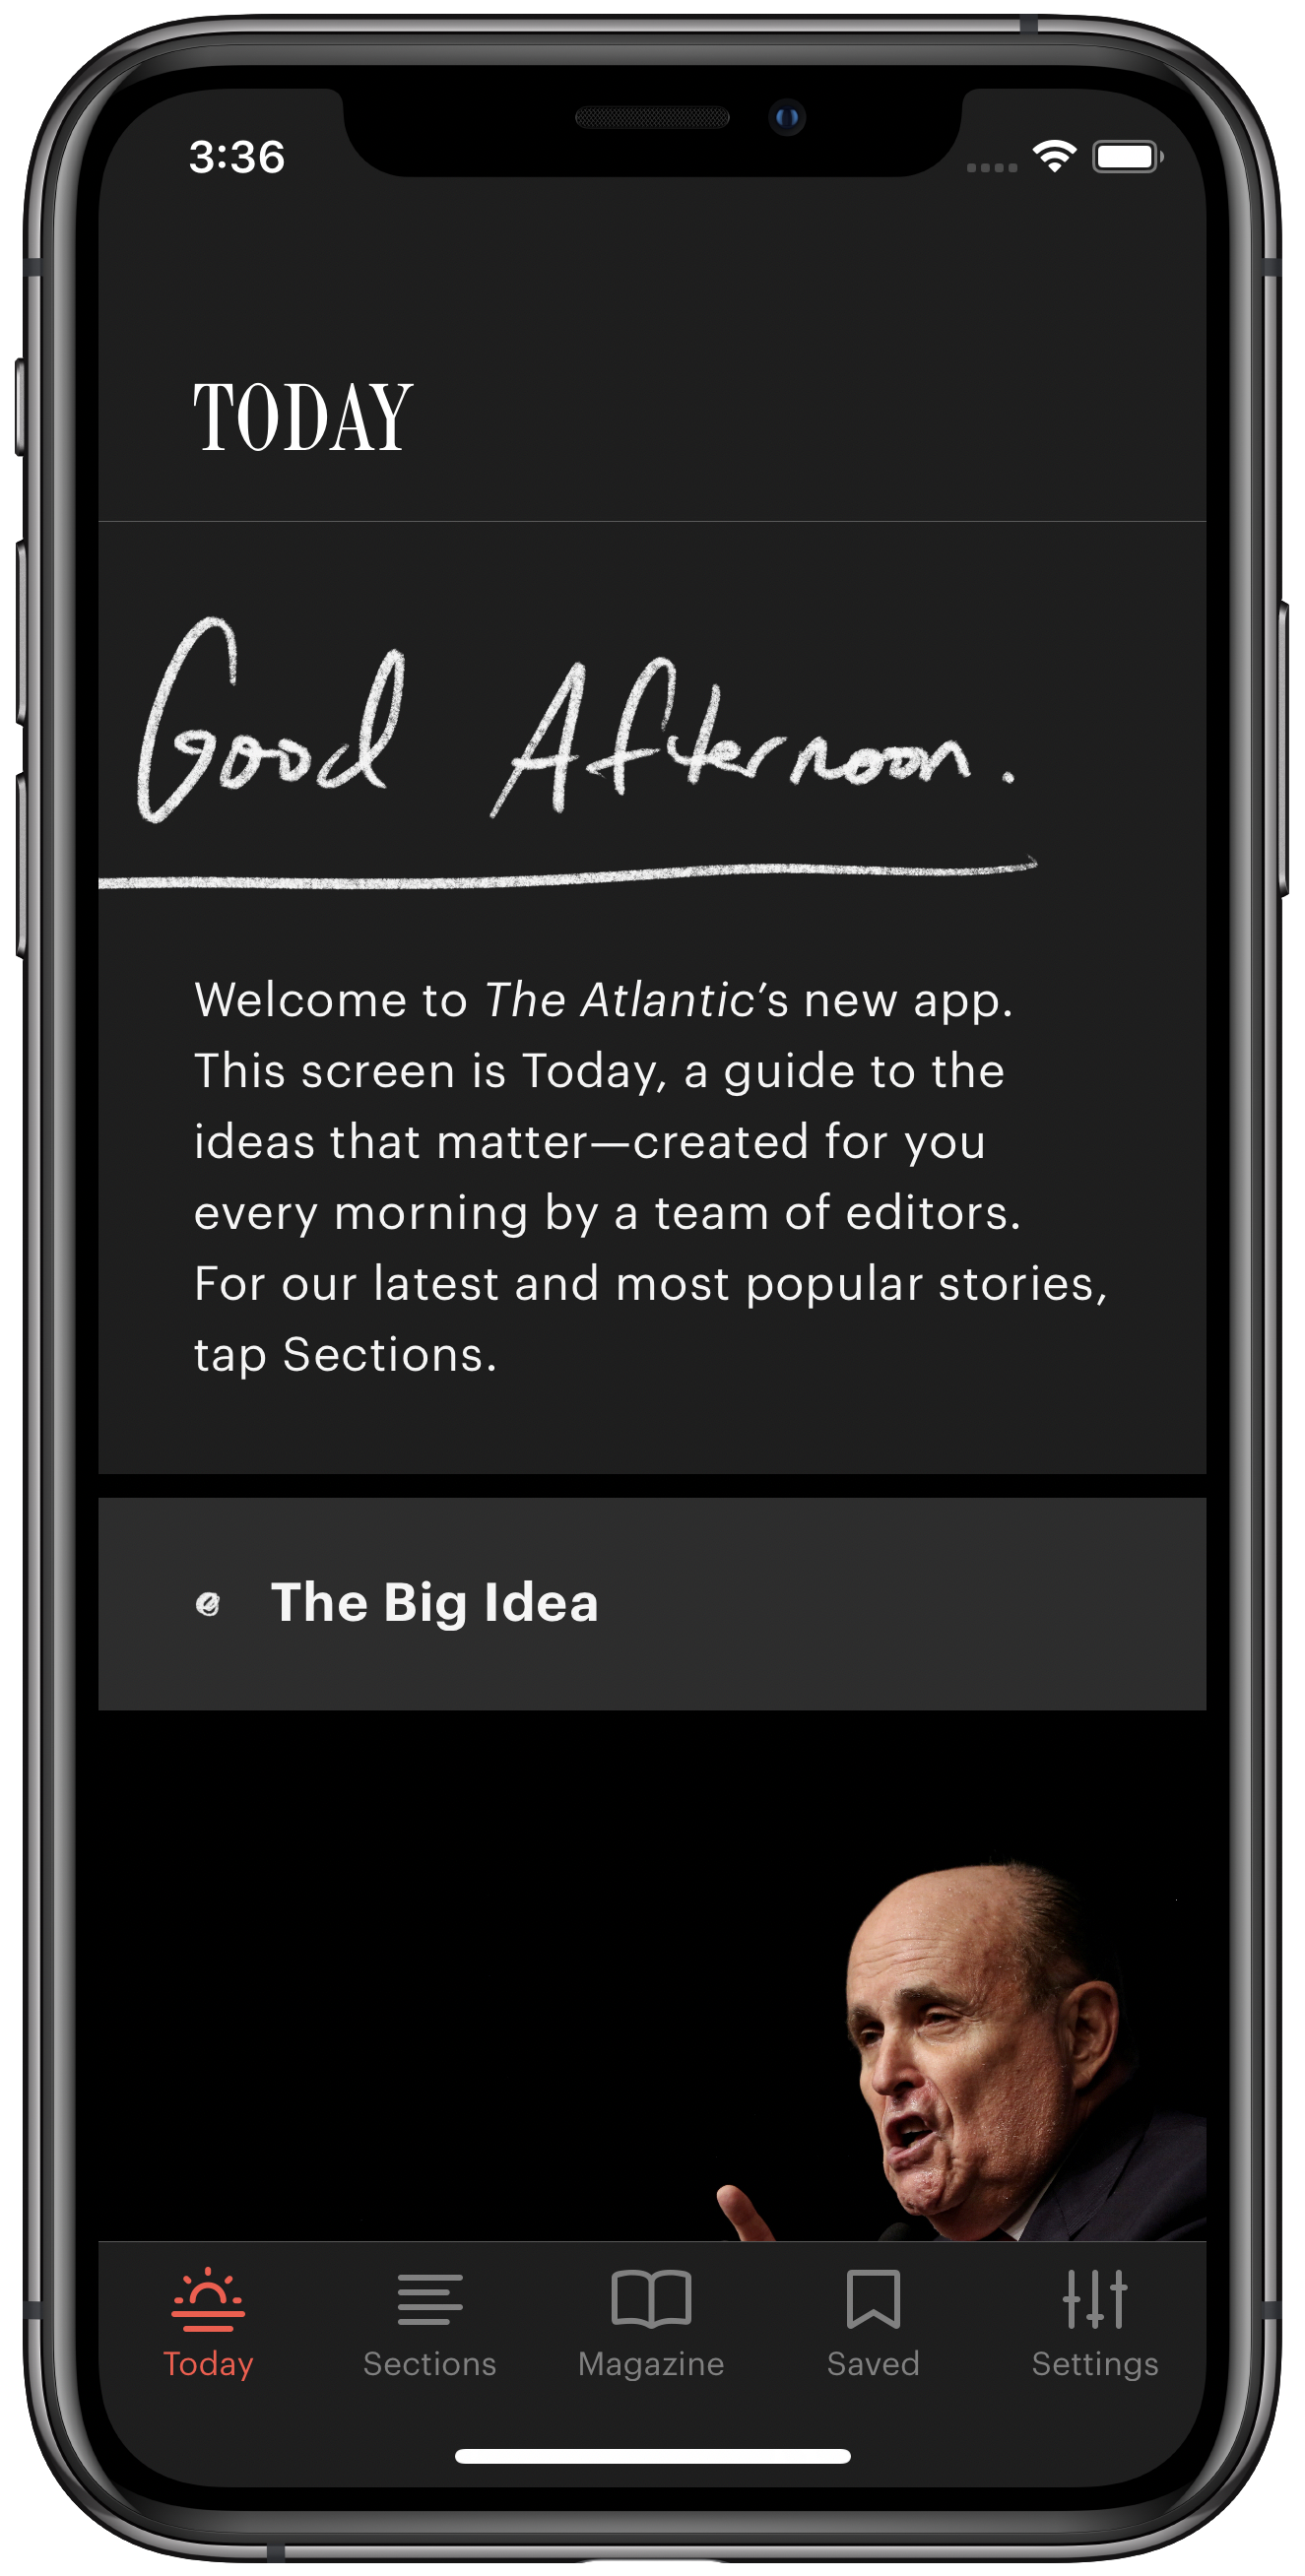 A screenshot of the new Atlantic app